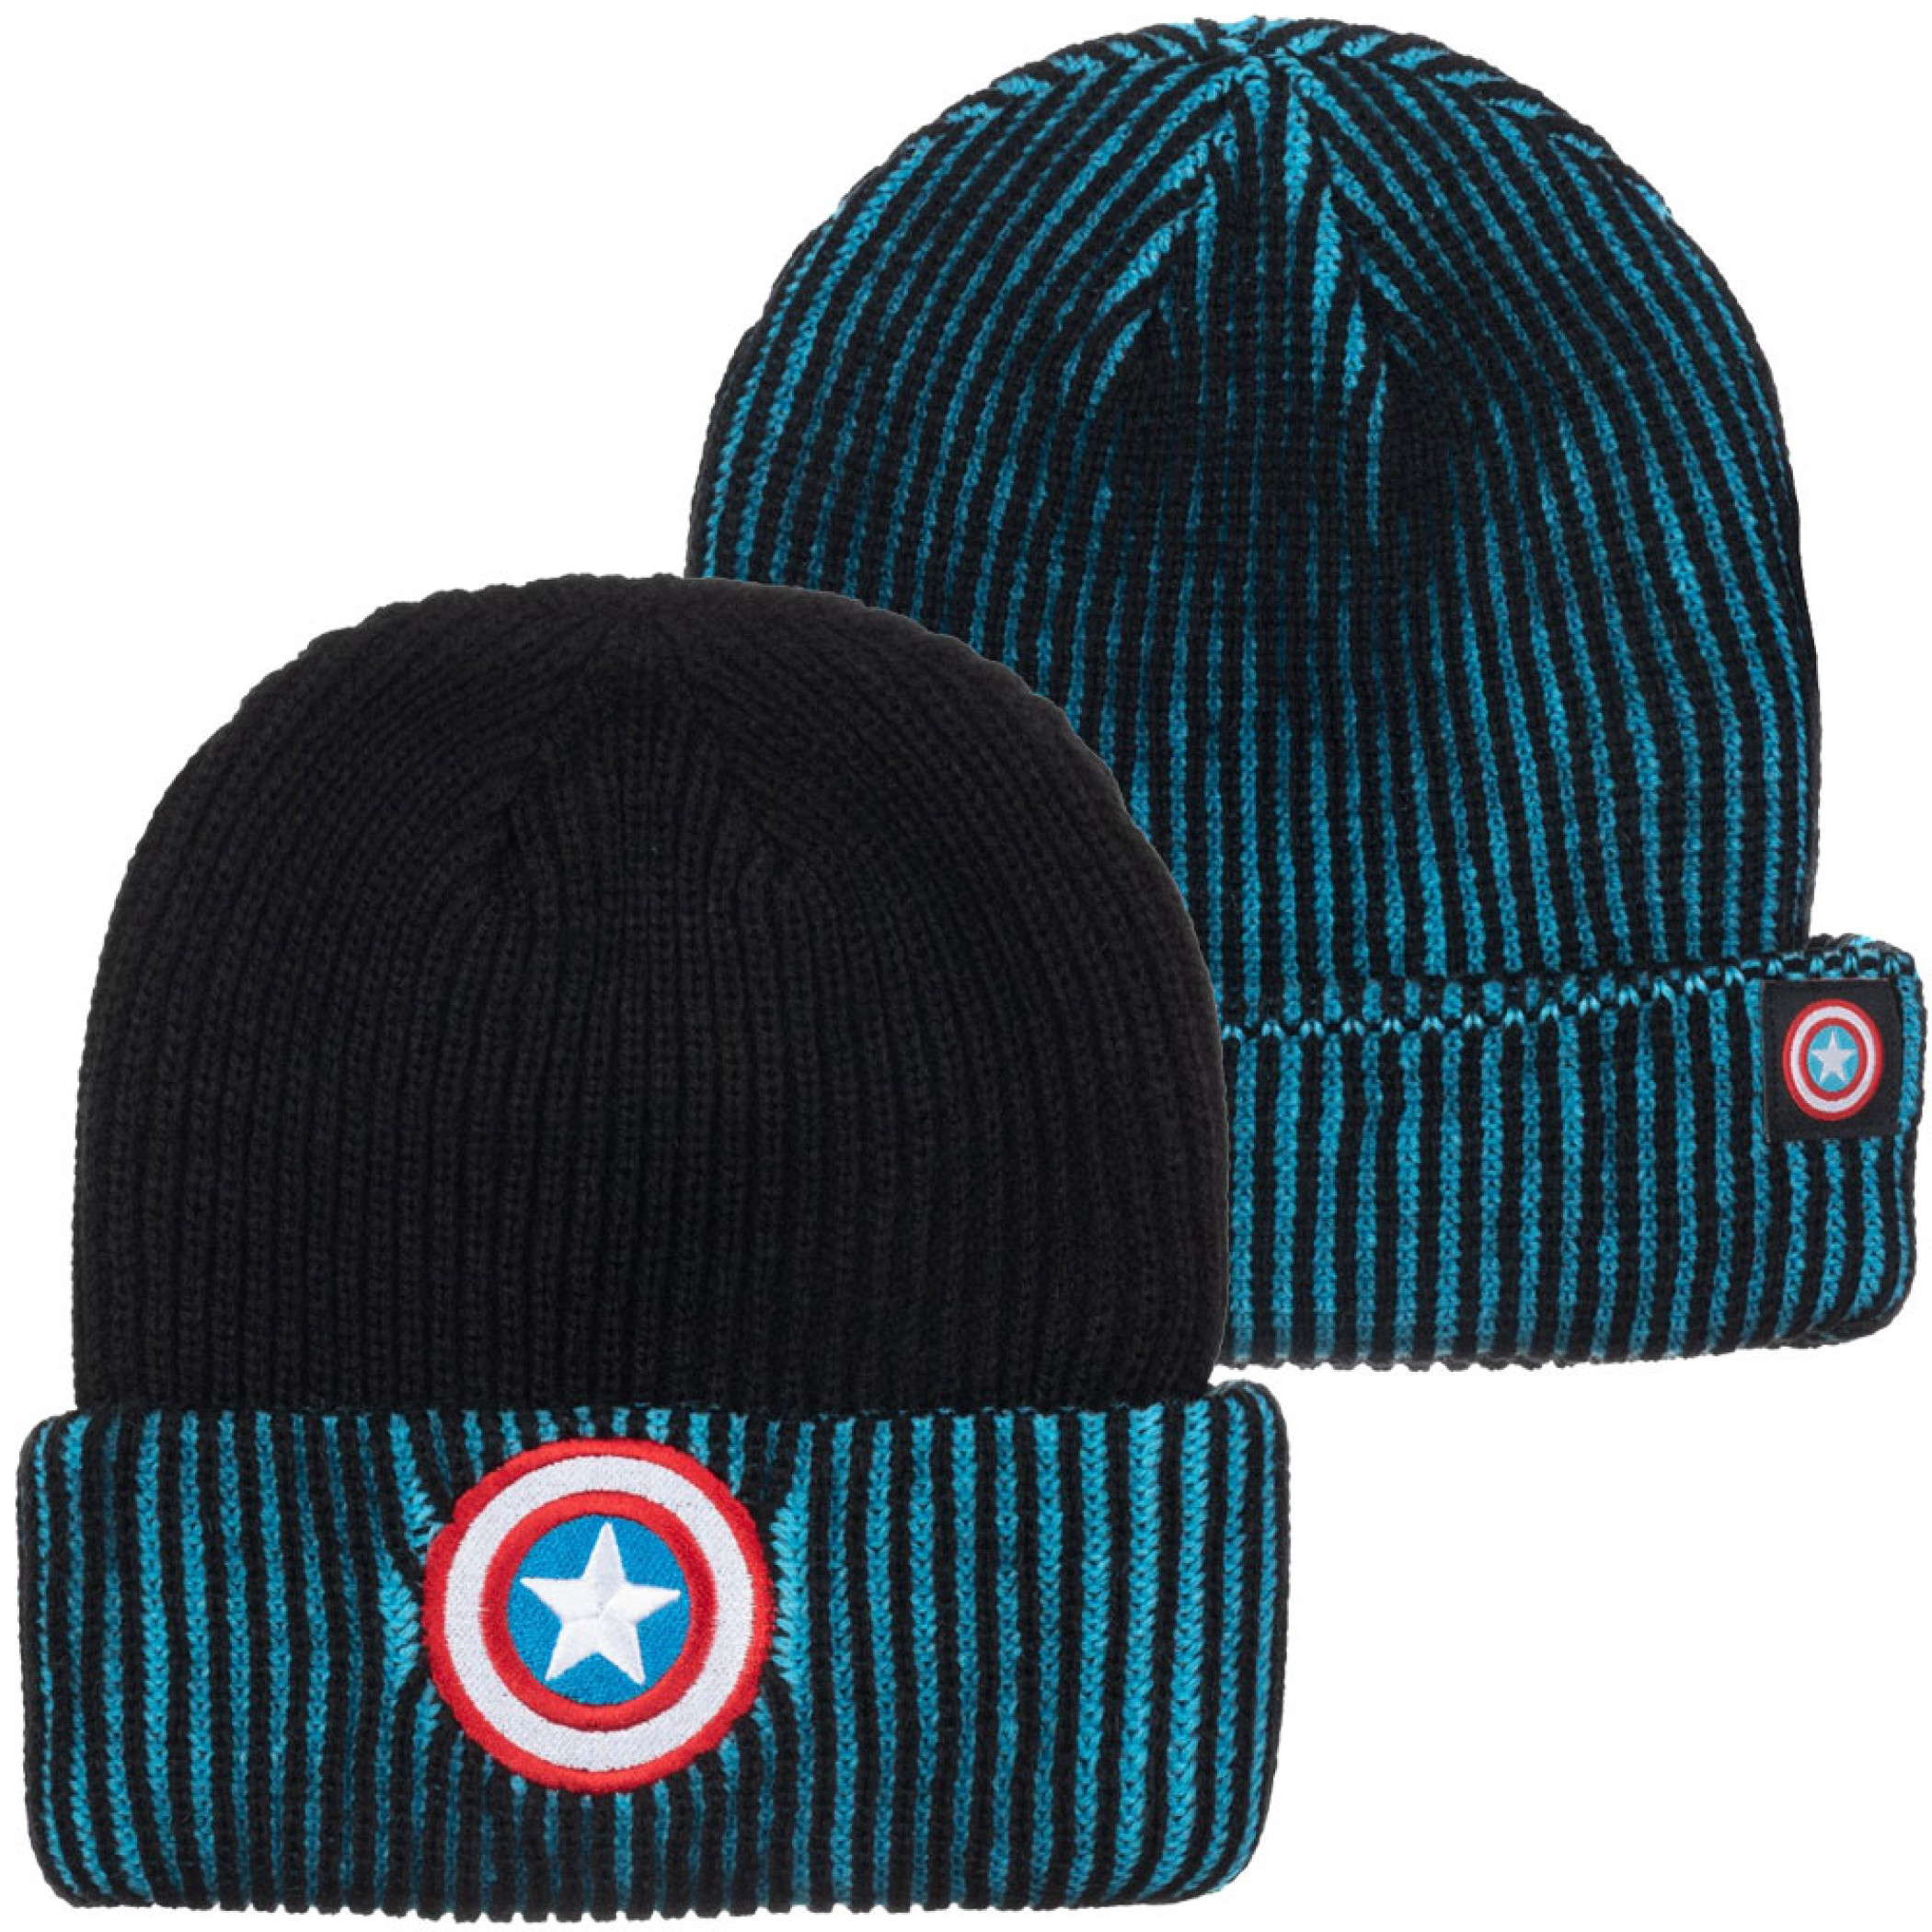 Captain America Reversible Beanie